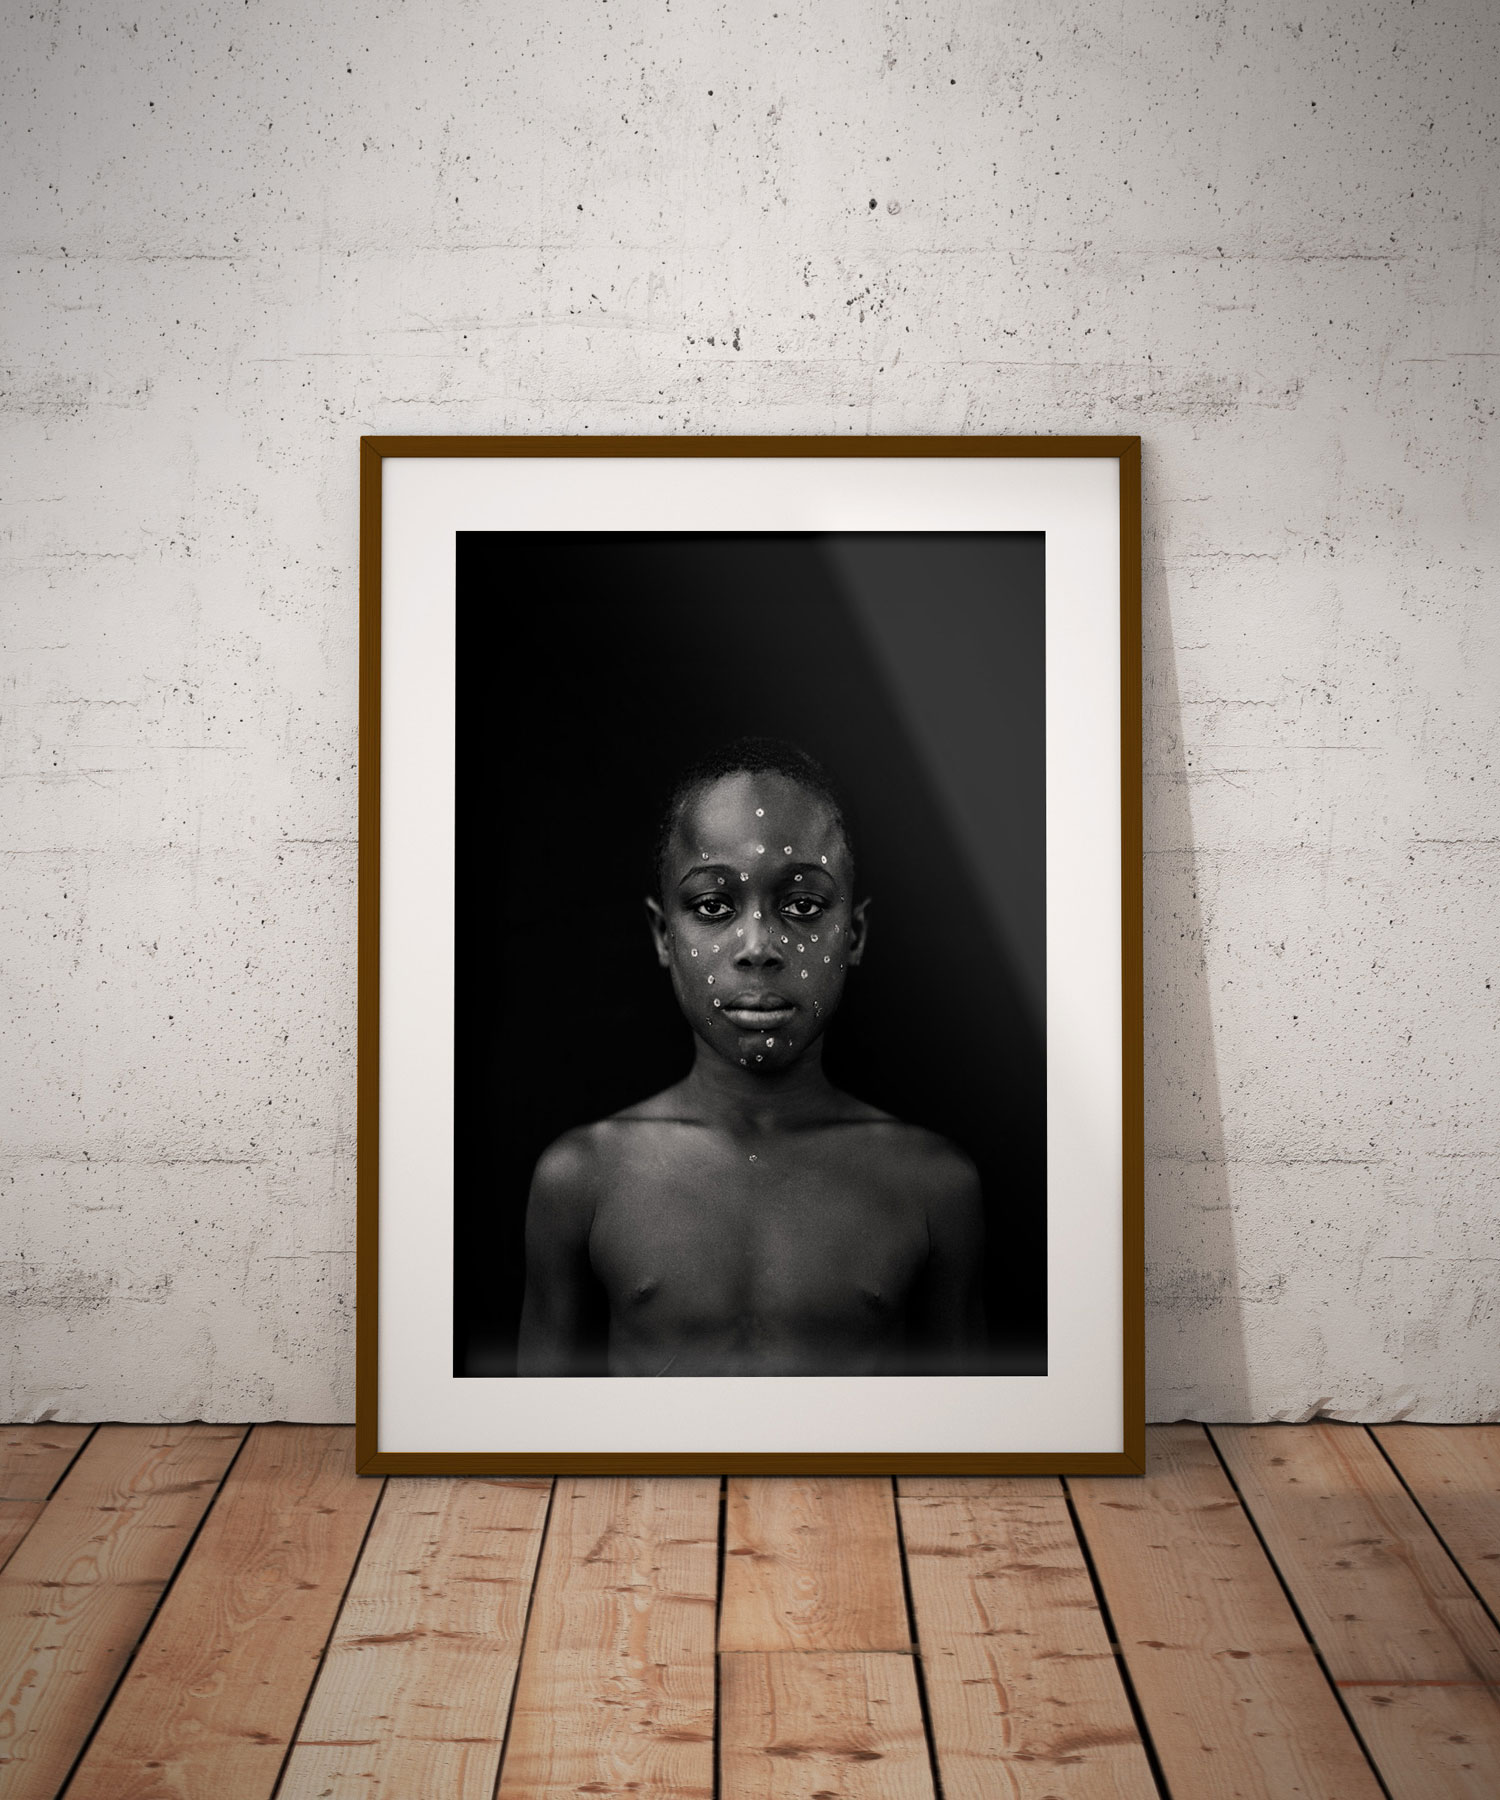 The black backdrop - Black and white portrait of young black boy with sequins on his face, Gambia, W Africa 'BOY WITH SEQUIN FACE (COMING OF AGE CEREMONY)' ©JASON FLORIO